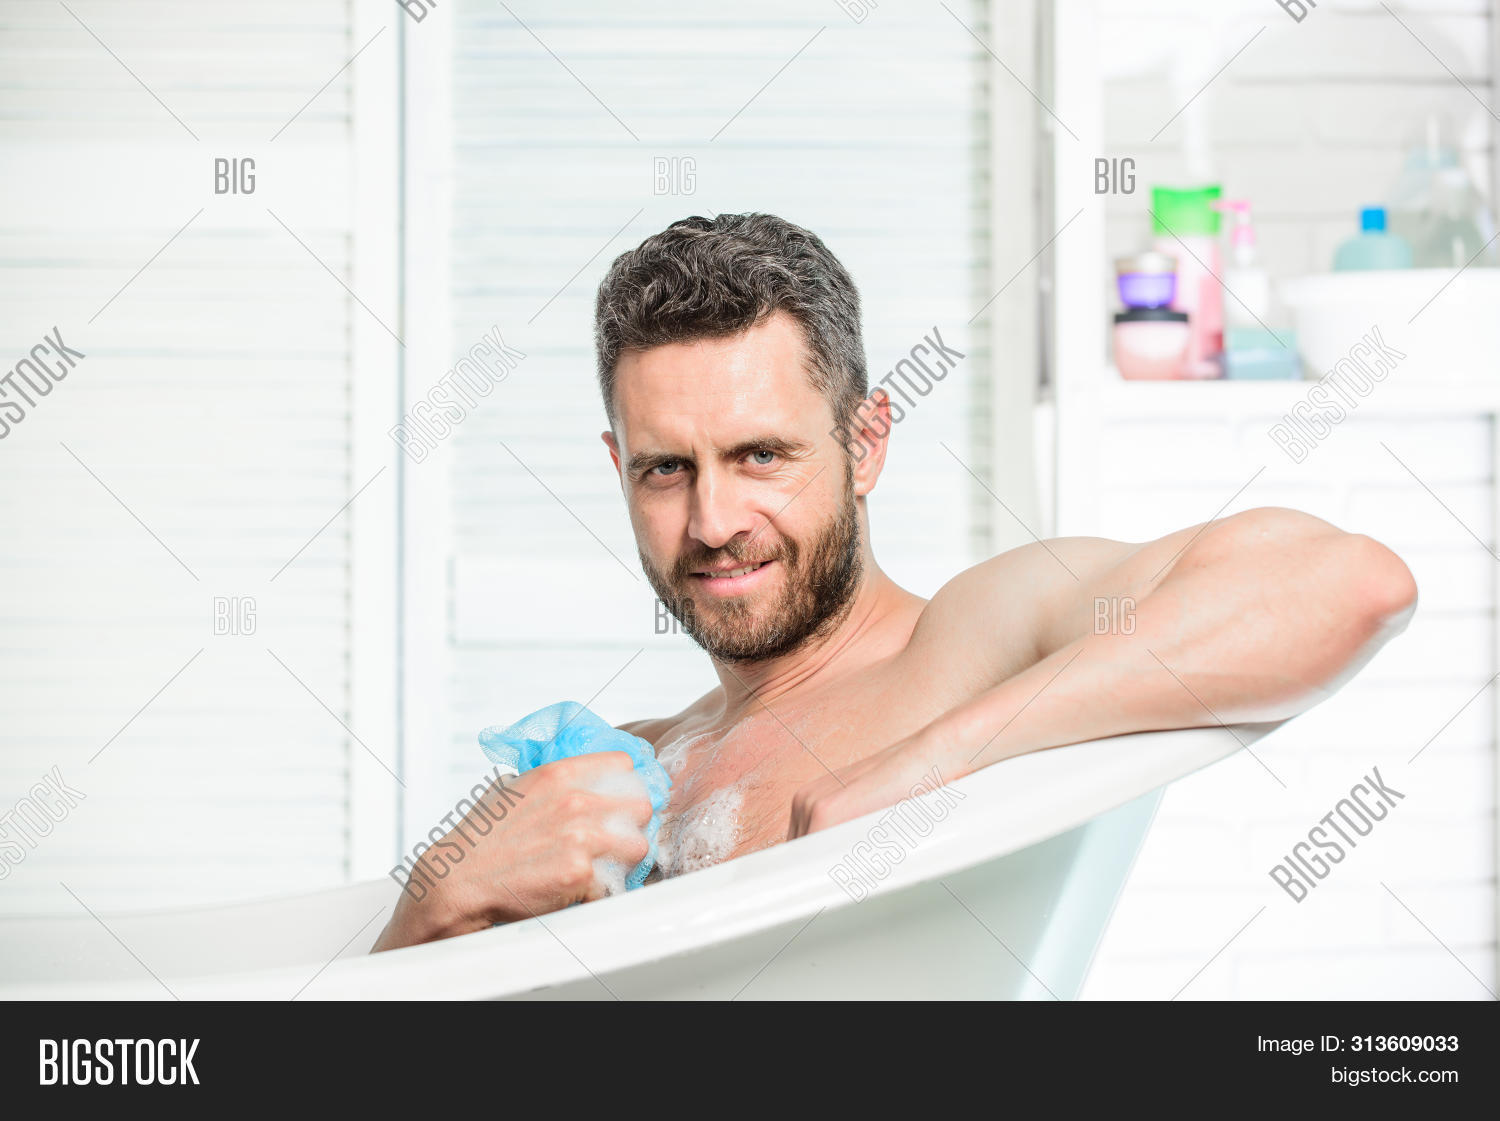 adult,athletic,bathing,bathroom,bathtub,body,can,care,clean,cleaning,concept,confidence,confident,freshness,gel,handsome,health,heart,hygiene,hygienic,improve,lotion,macho,man,masculine,naked,parts,peeling,personal,procedure,relaxation,relaxing,sexy,shower,skin,smile,sponge,take,total,use